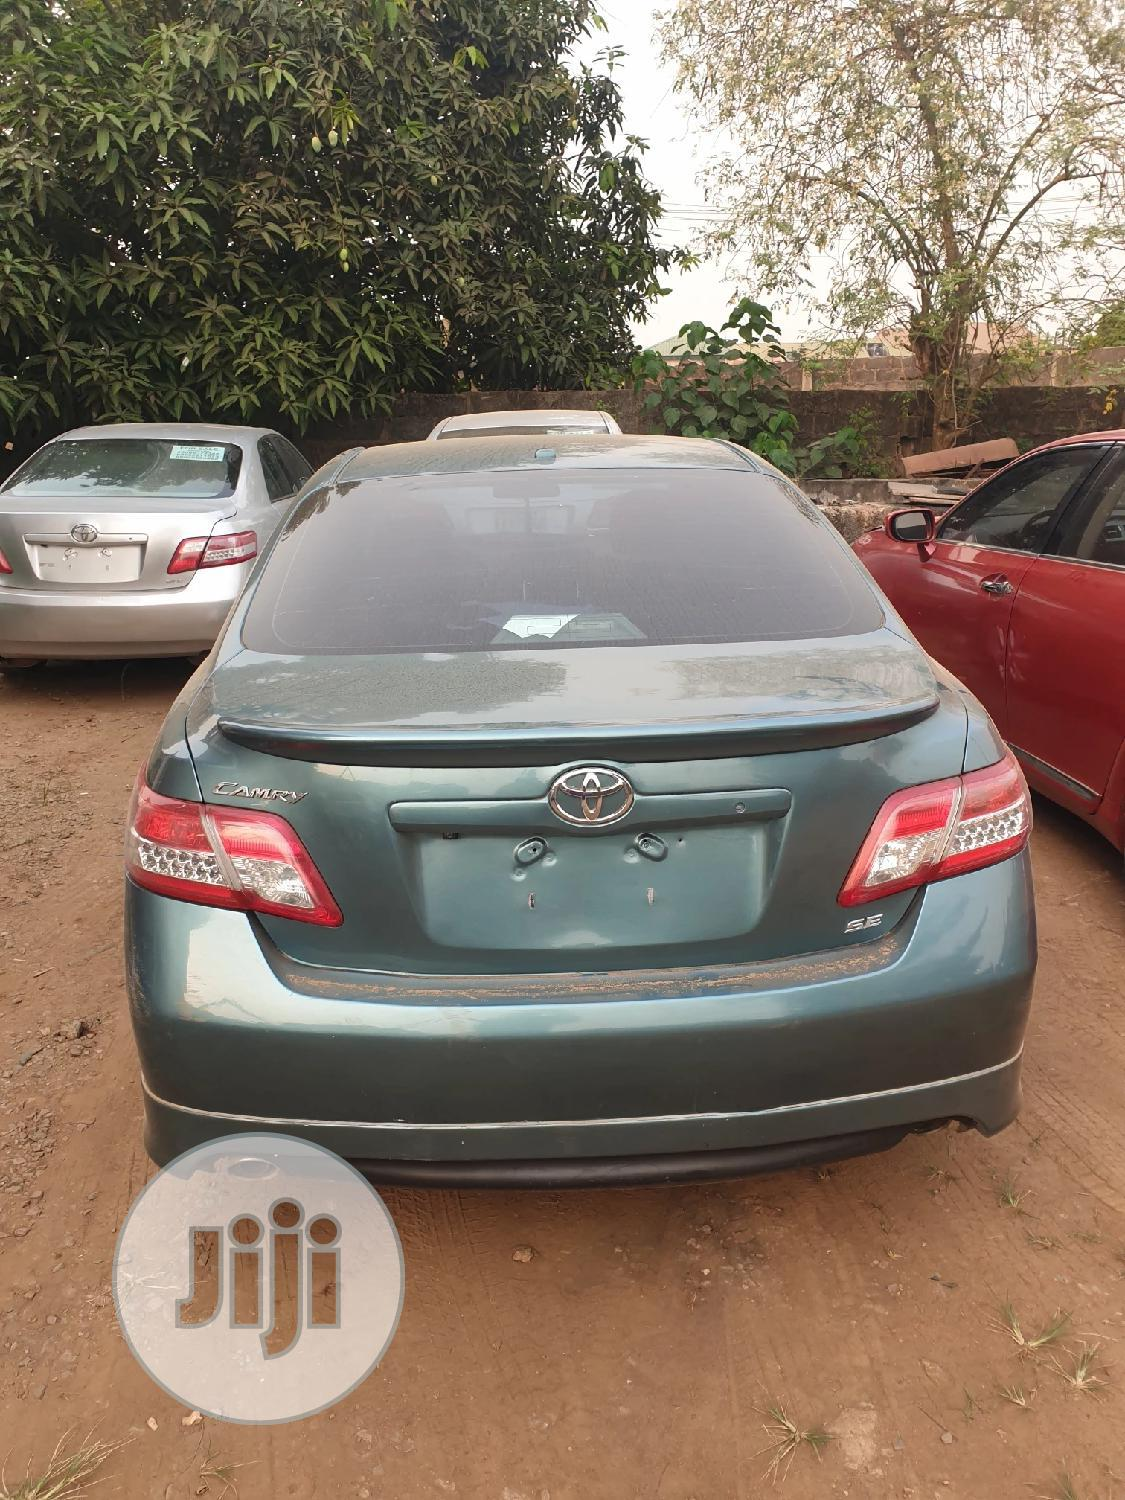 Toyota Camry 2011 Green   Cars for sale in Alimosho, Lagos State, Nigeria